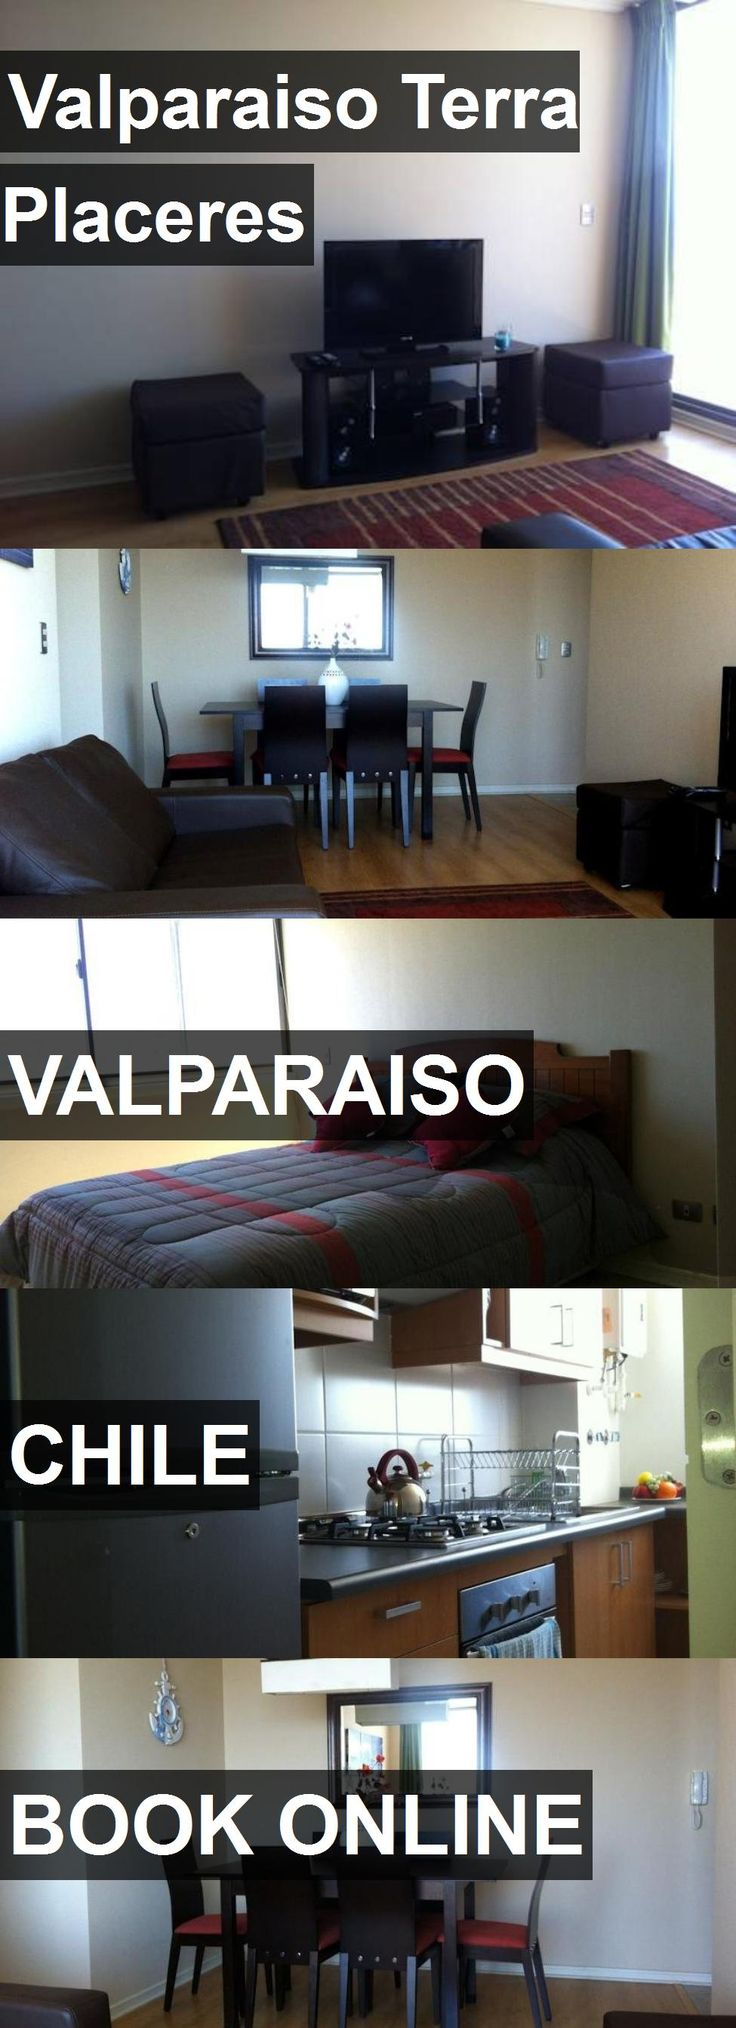 Hotel Valparaiso Terra Placeres in Valparaiso, Chile. For more information, photos, reviews and best prices please follow the link. #Chile #Valparaiso #travel #vacation #hotel